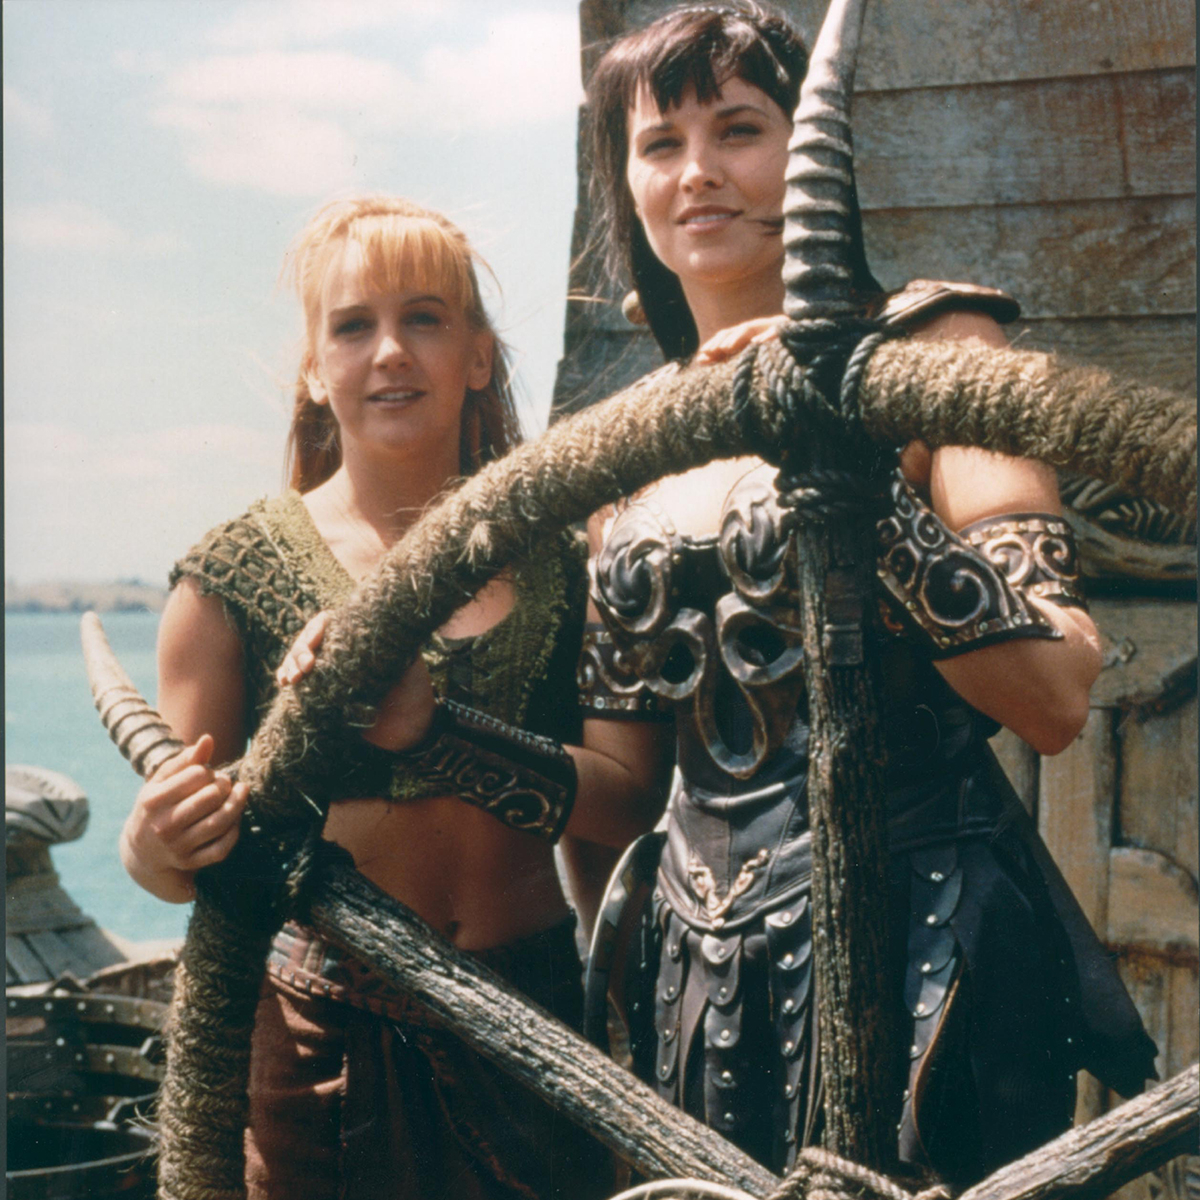 Photos from Fascinating Facts About Xena: Warrior Princess - E! Online